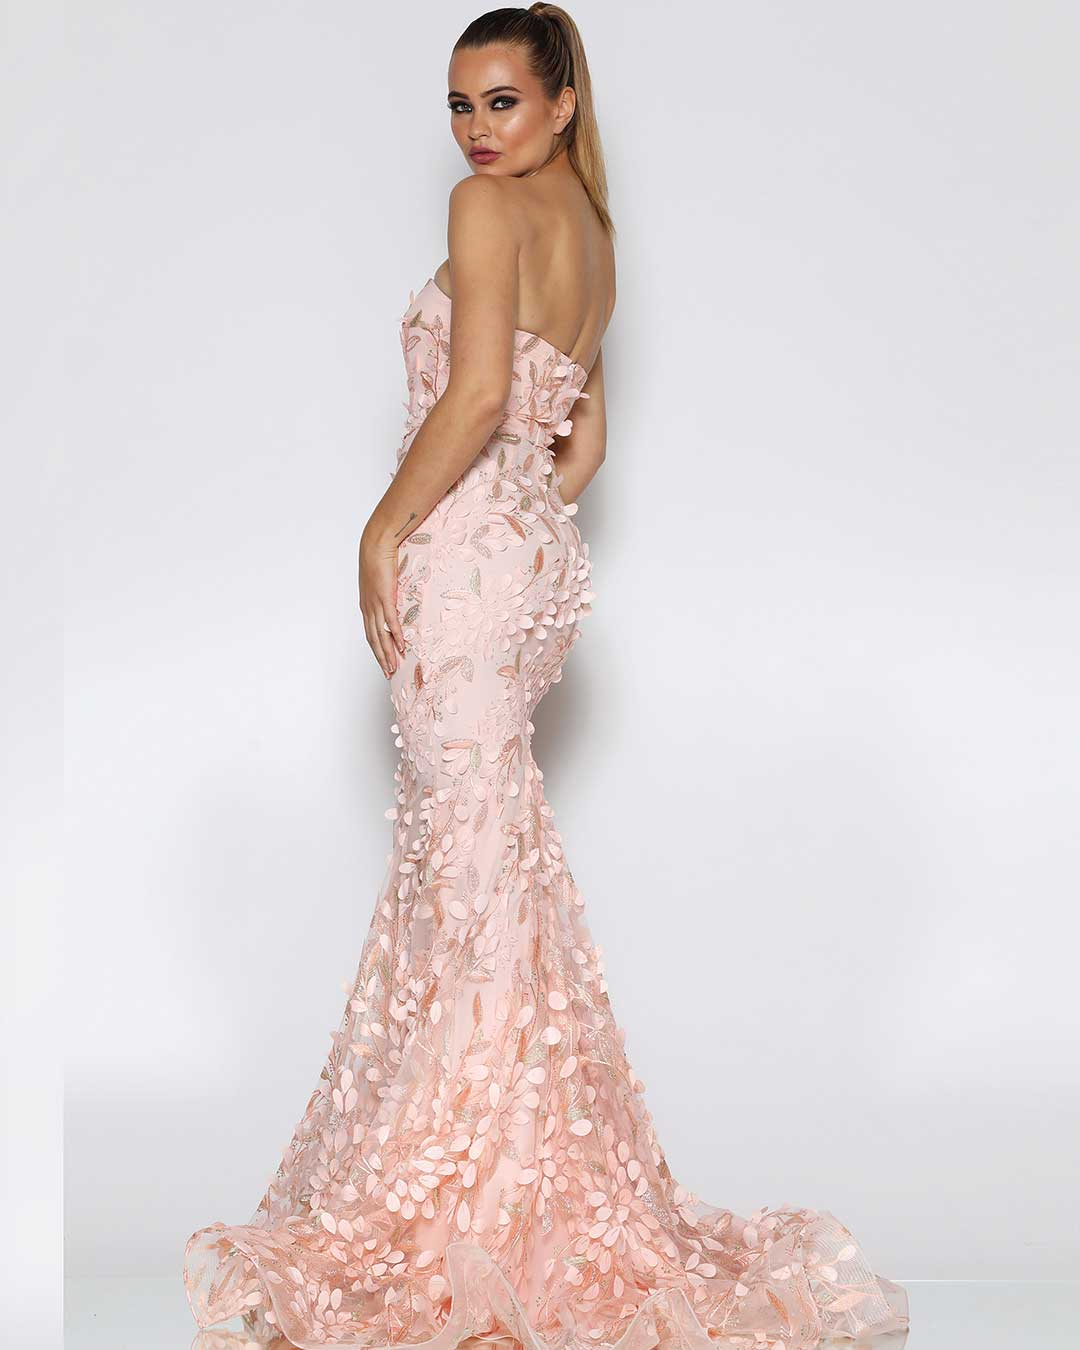 Camilia Petal Gown - Pink - Miss Runway Boutique